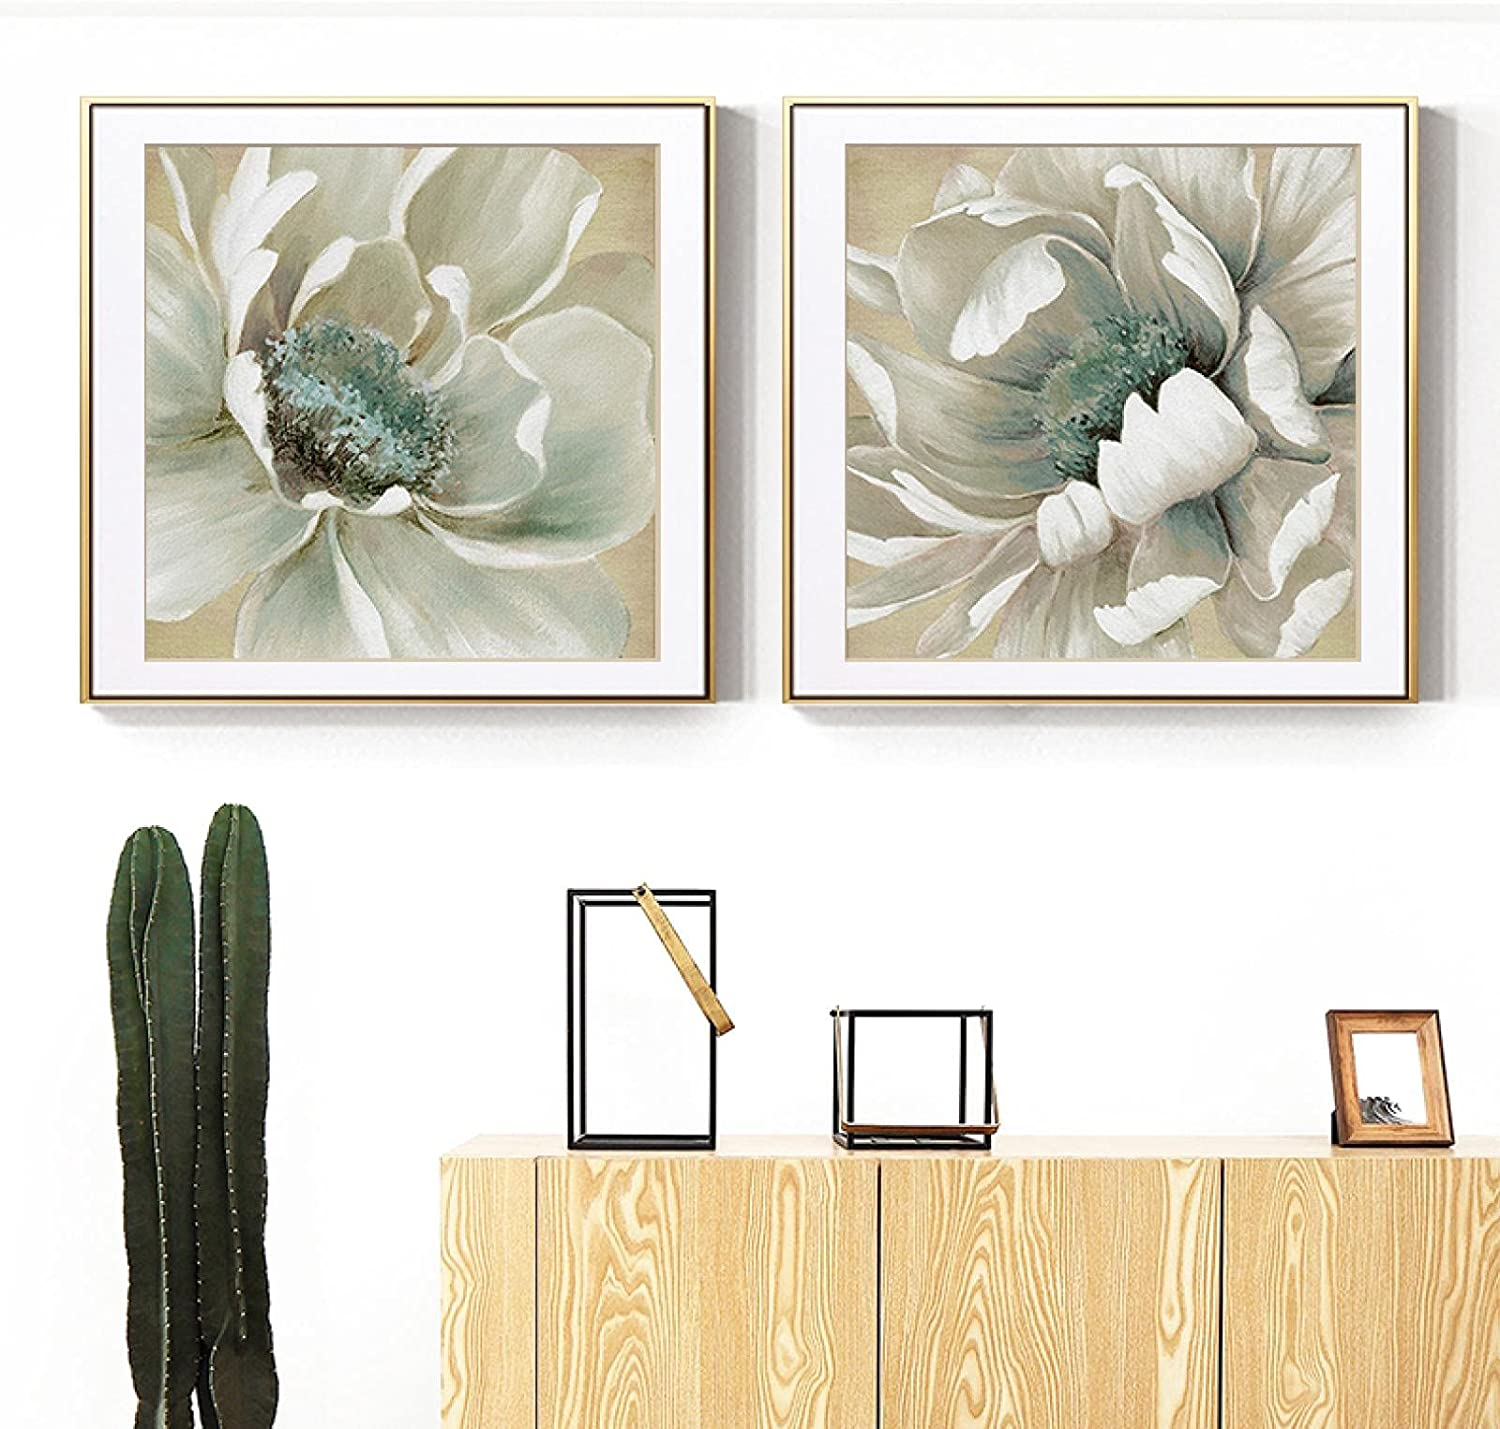 Sunsightly Print on Canvas Quality inspection Nashville-Davidson Mall Abstract Pain Big White Flower